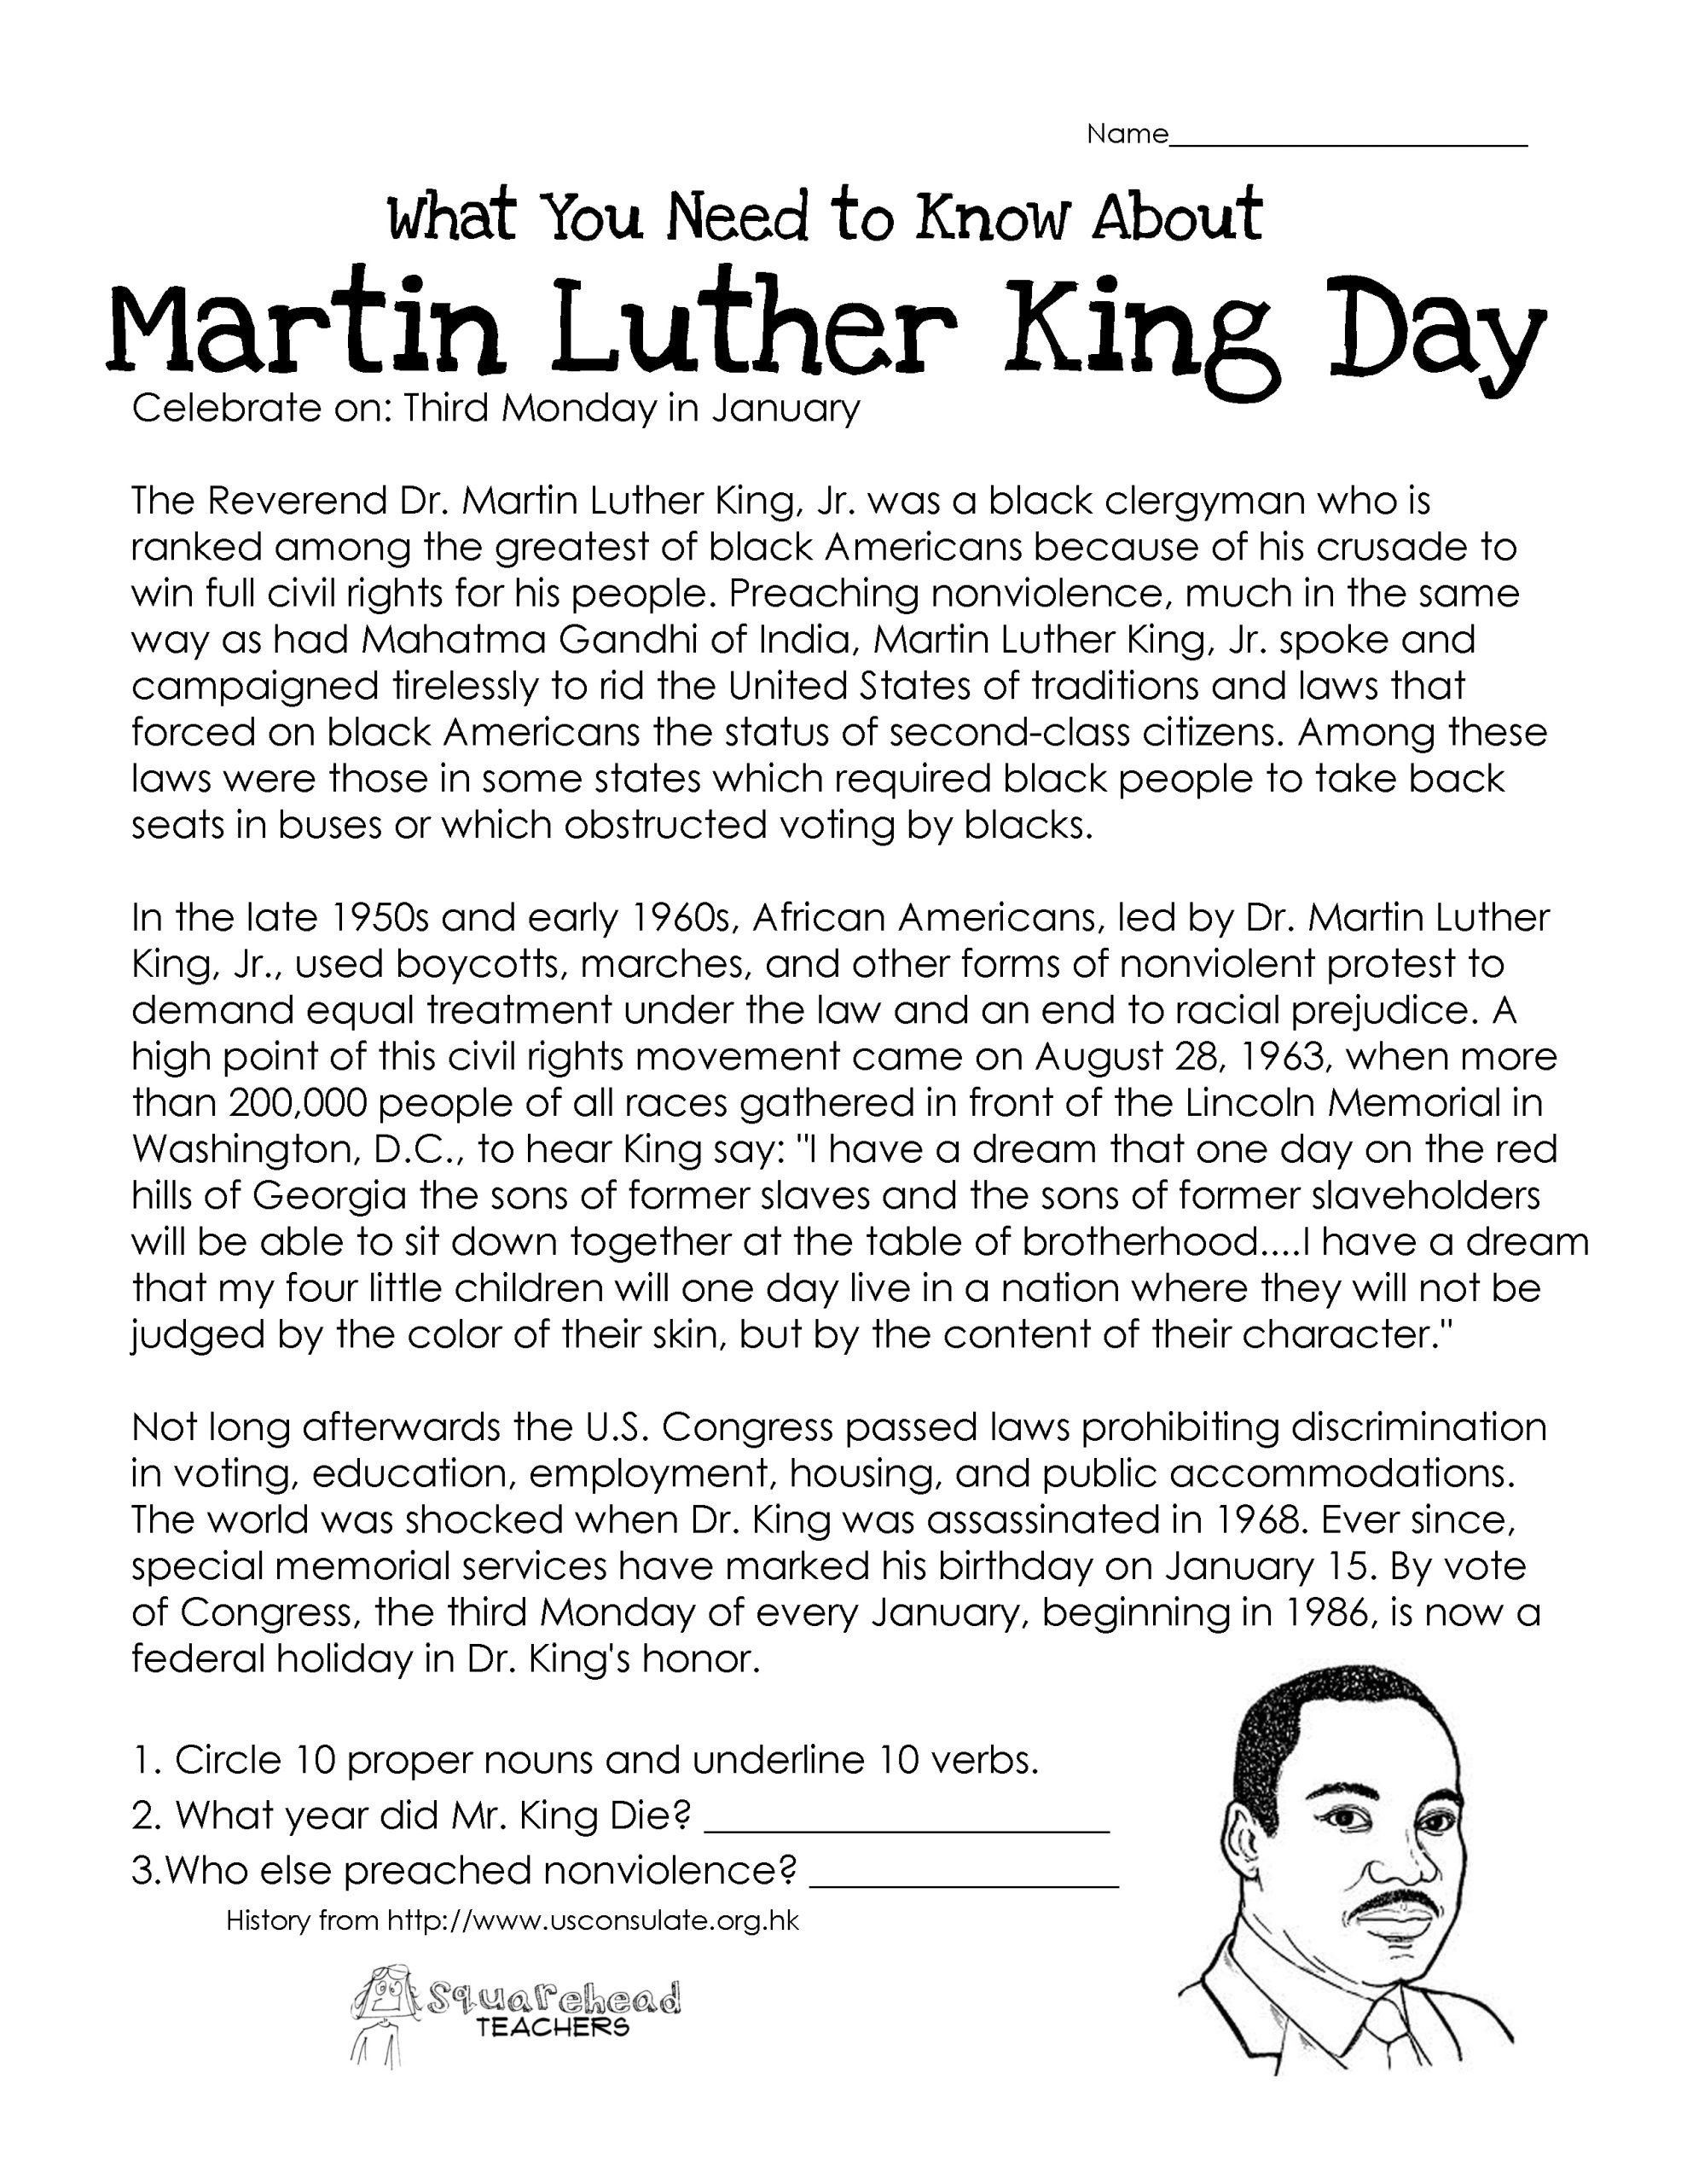 Memorial Day Worksheets Free Printable Tremendous Free Printable Martin Luther King Coloring Pages